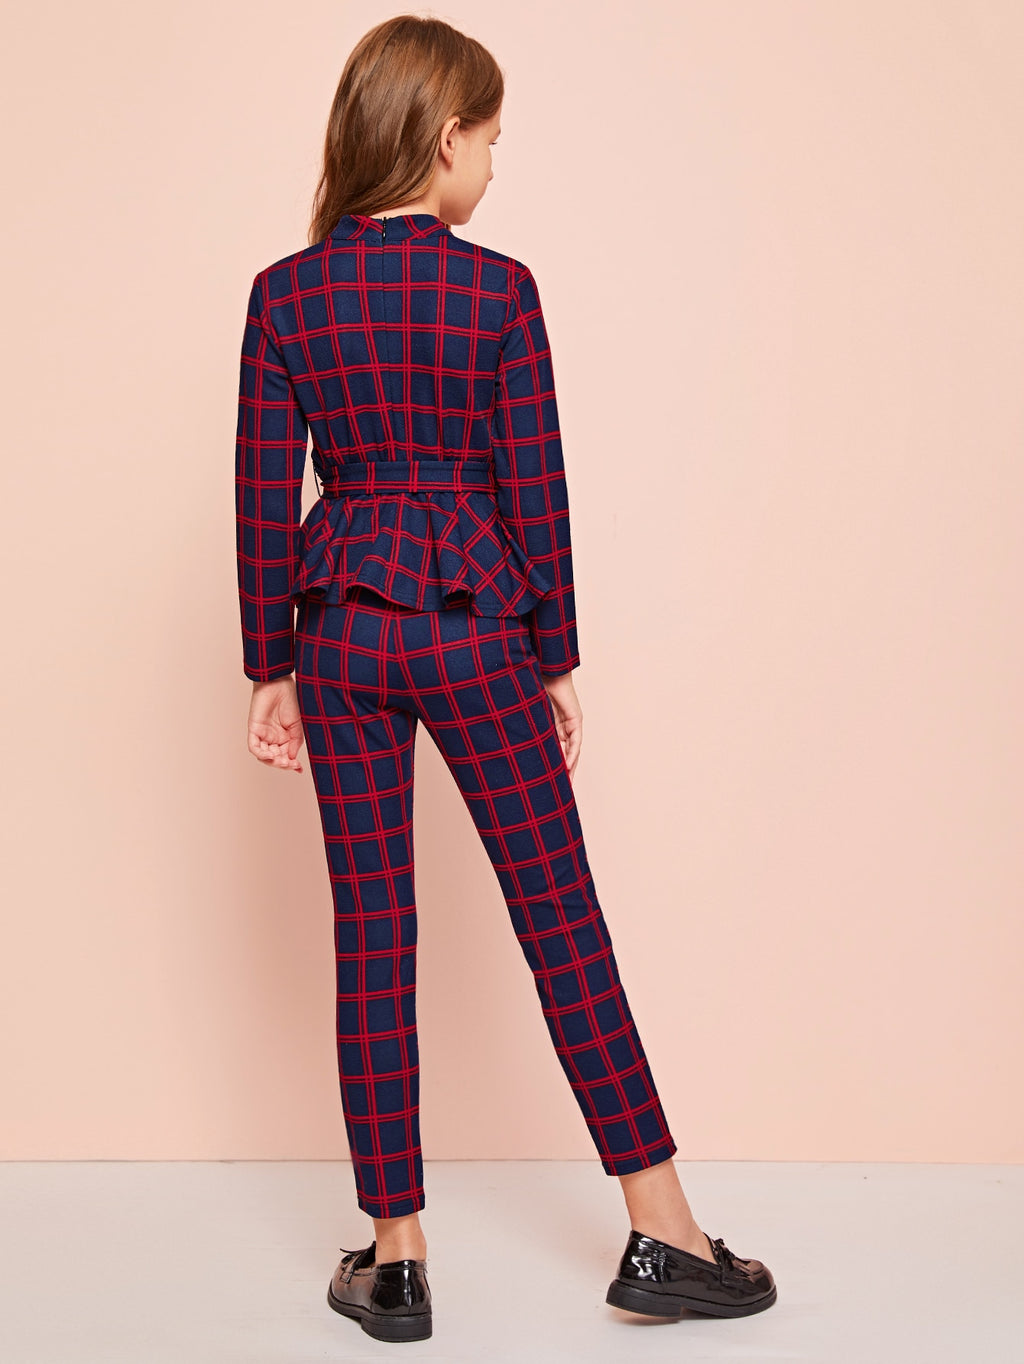 Girls Mock Neck Belted Plaid Peplum Top & Pants Set